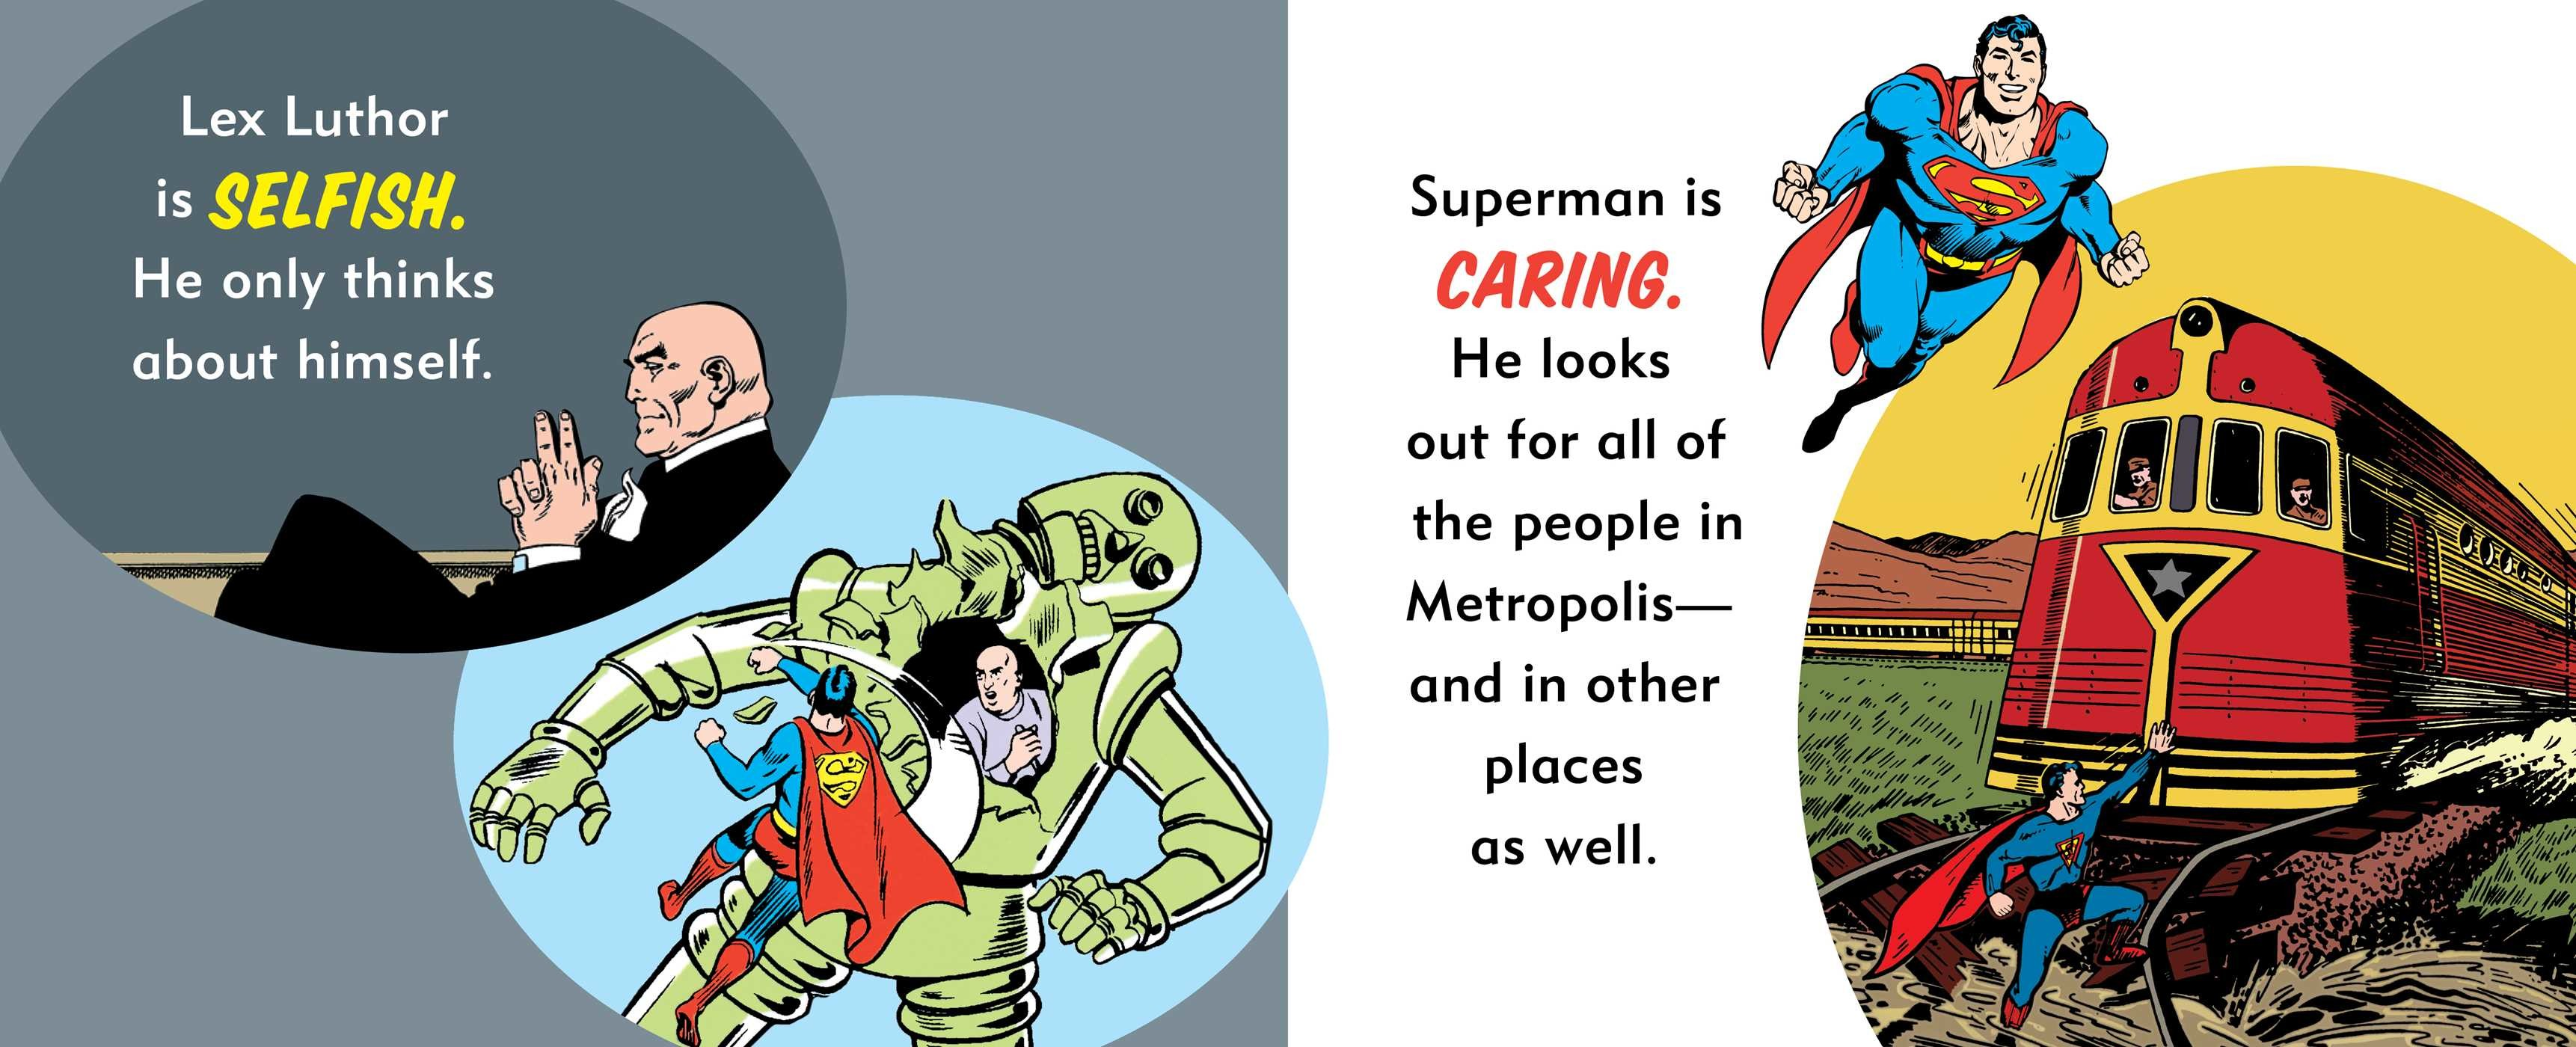 Dc super heroes my first book of super villains 9781935703181.in03